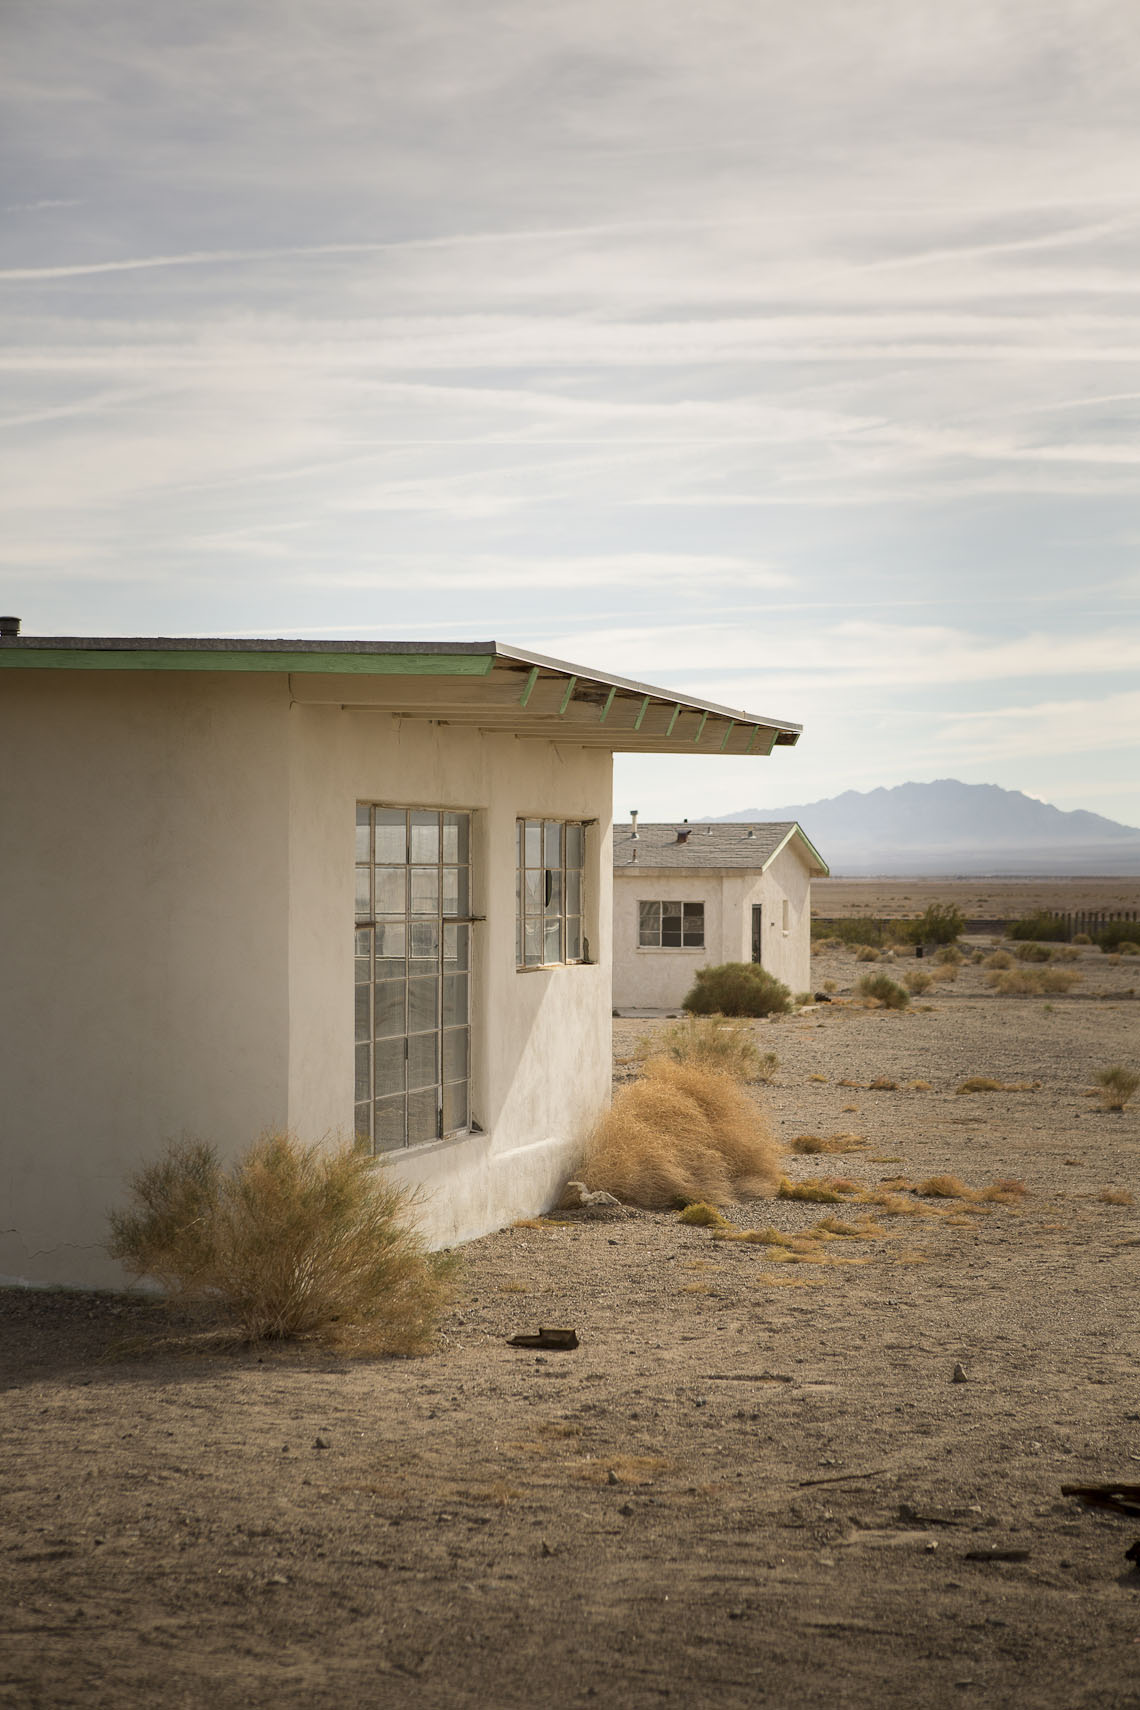 Small Dwellings in the Nevada Desert